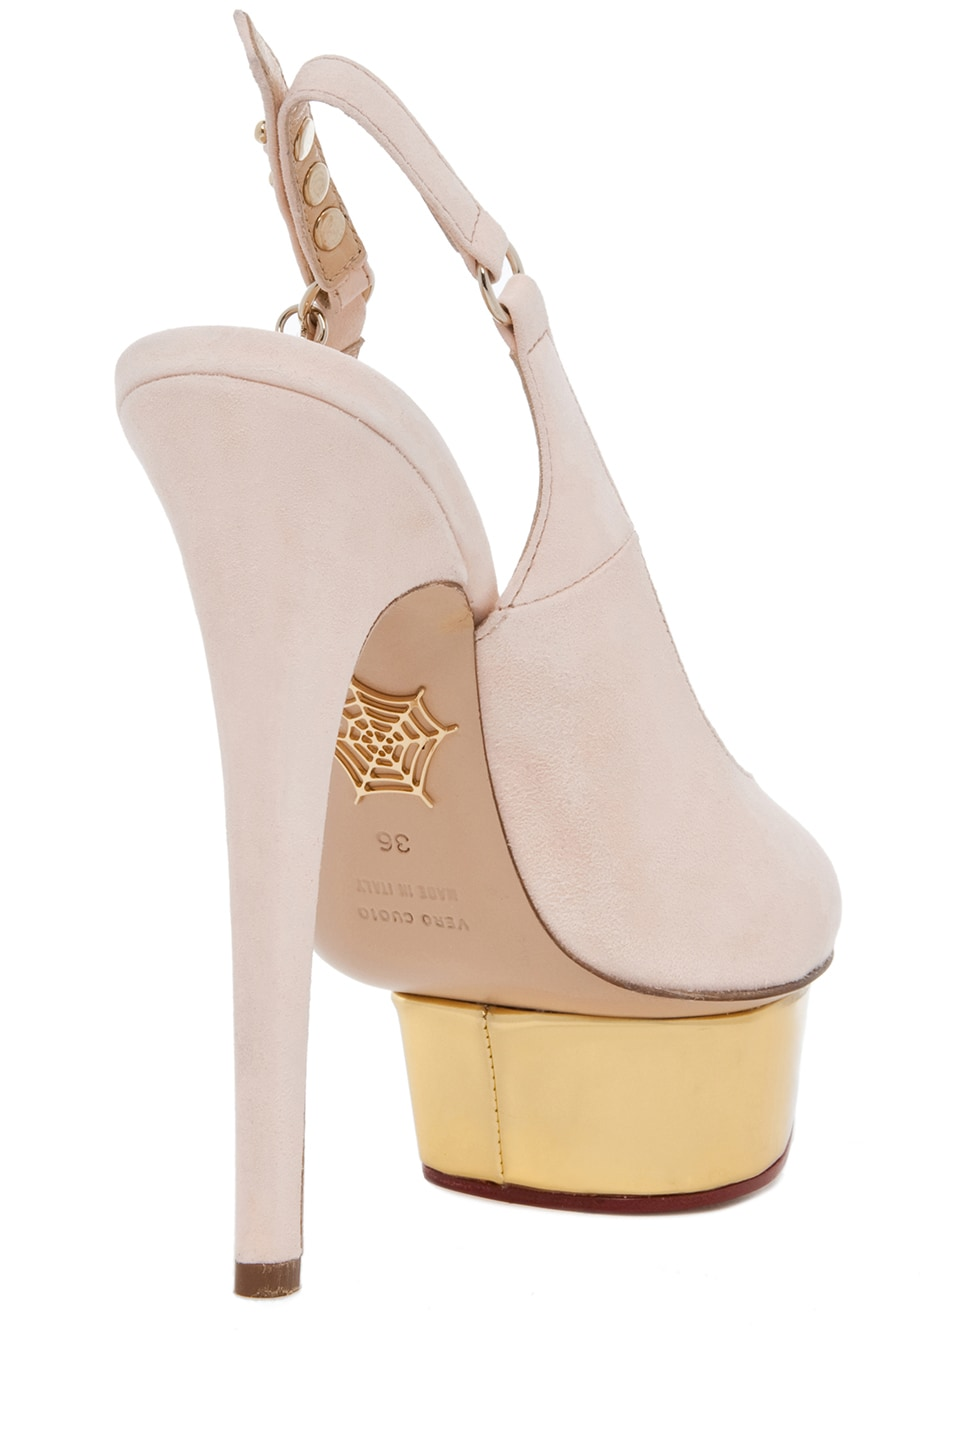 Image 3 of Charlotte Olympia Bon Bon Suede Sling Back Heels in Cipria